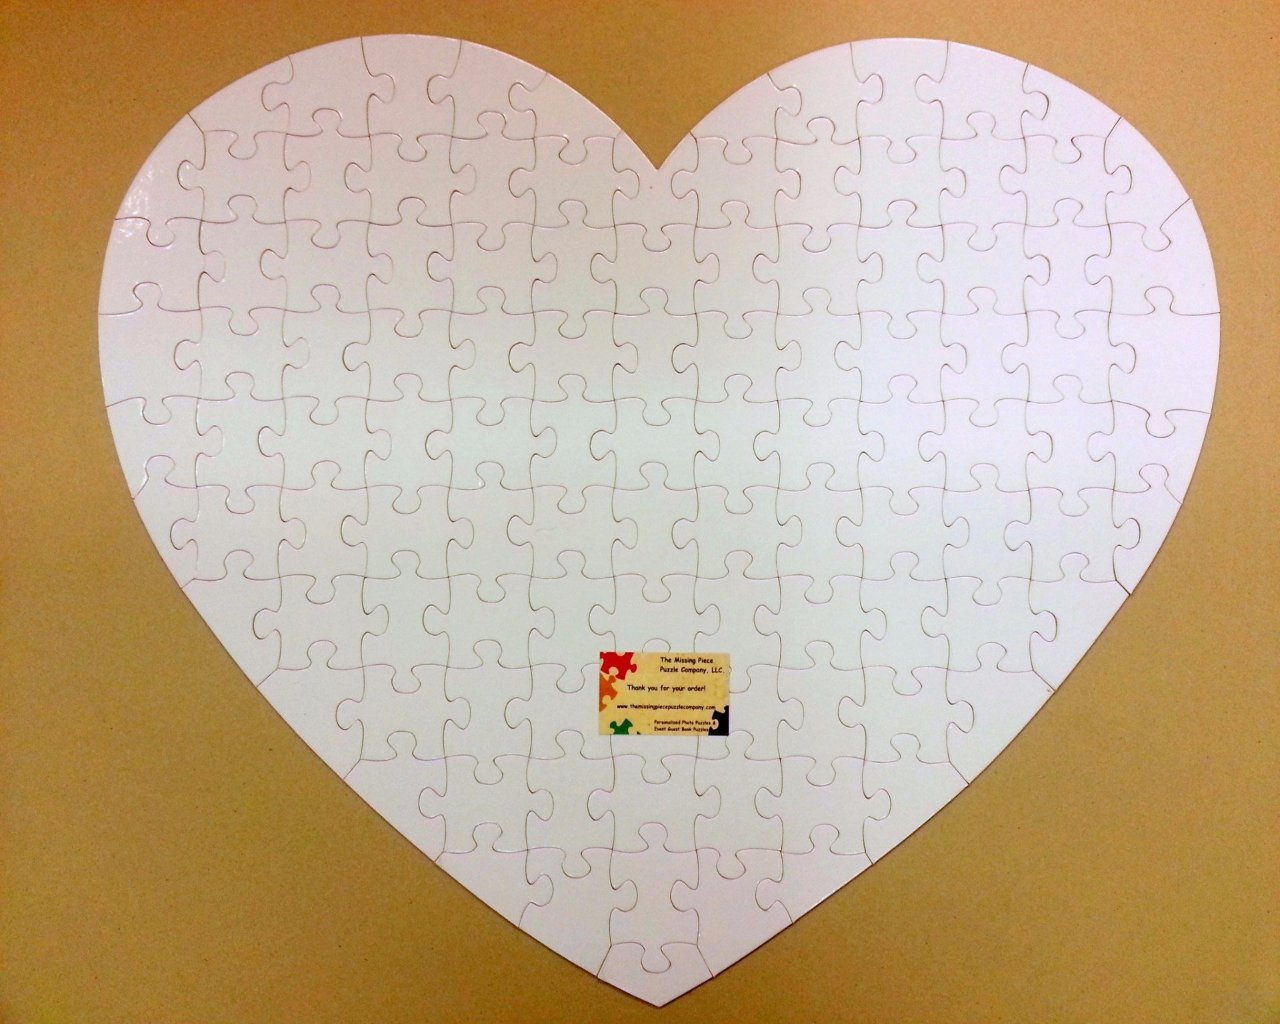 Giant Heart Shaped Guest Book Puzzle With 108 White Puzzle Pieces